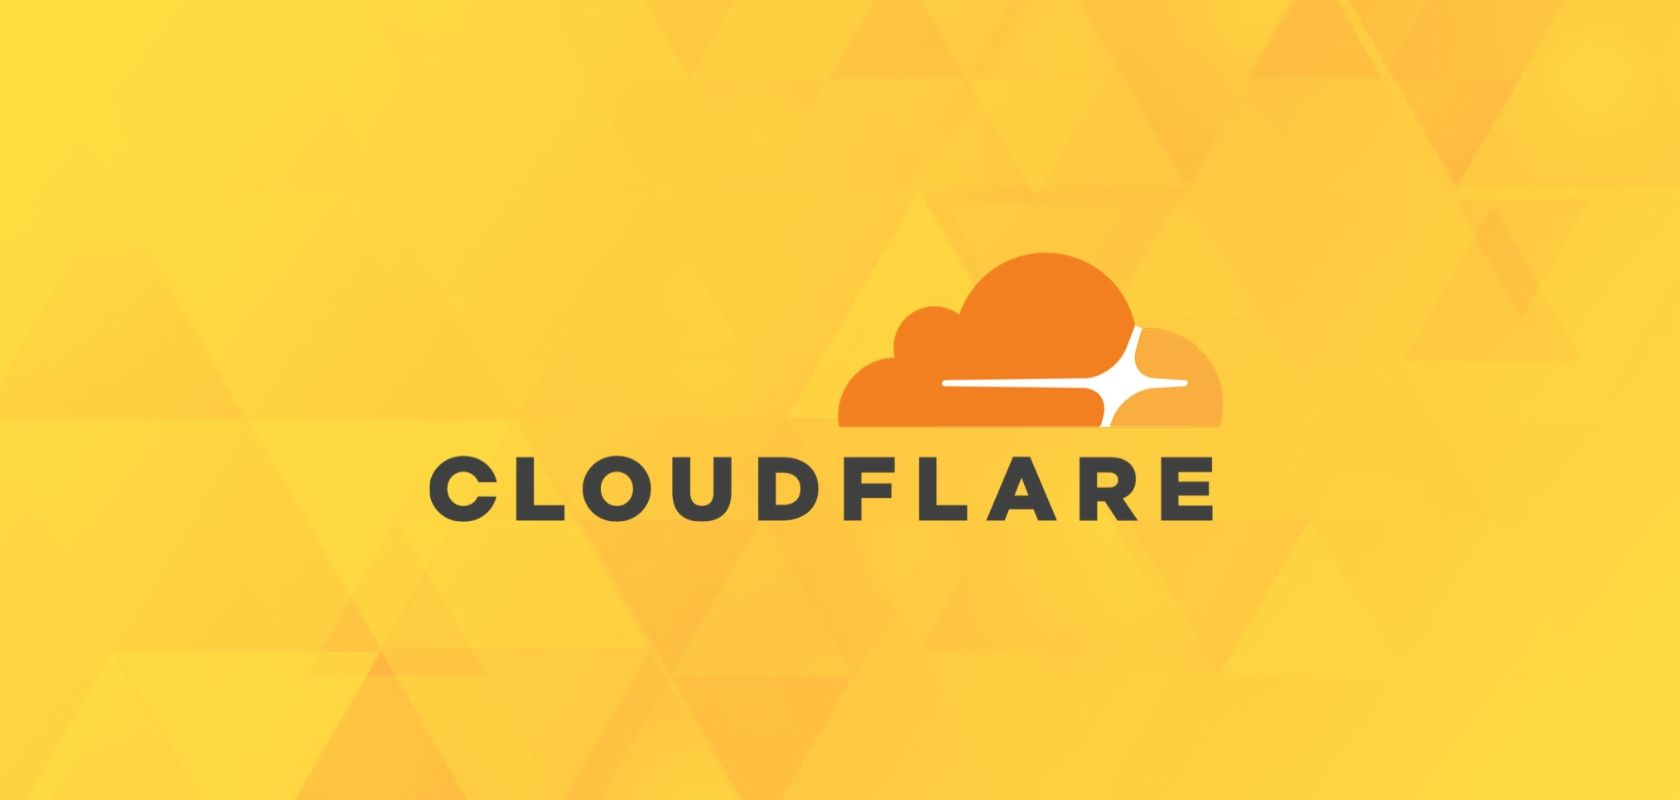 Cloudflare ordered to reveal identity behind pirate site